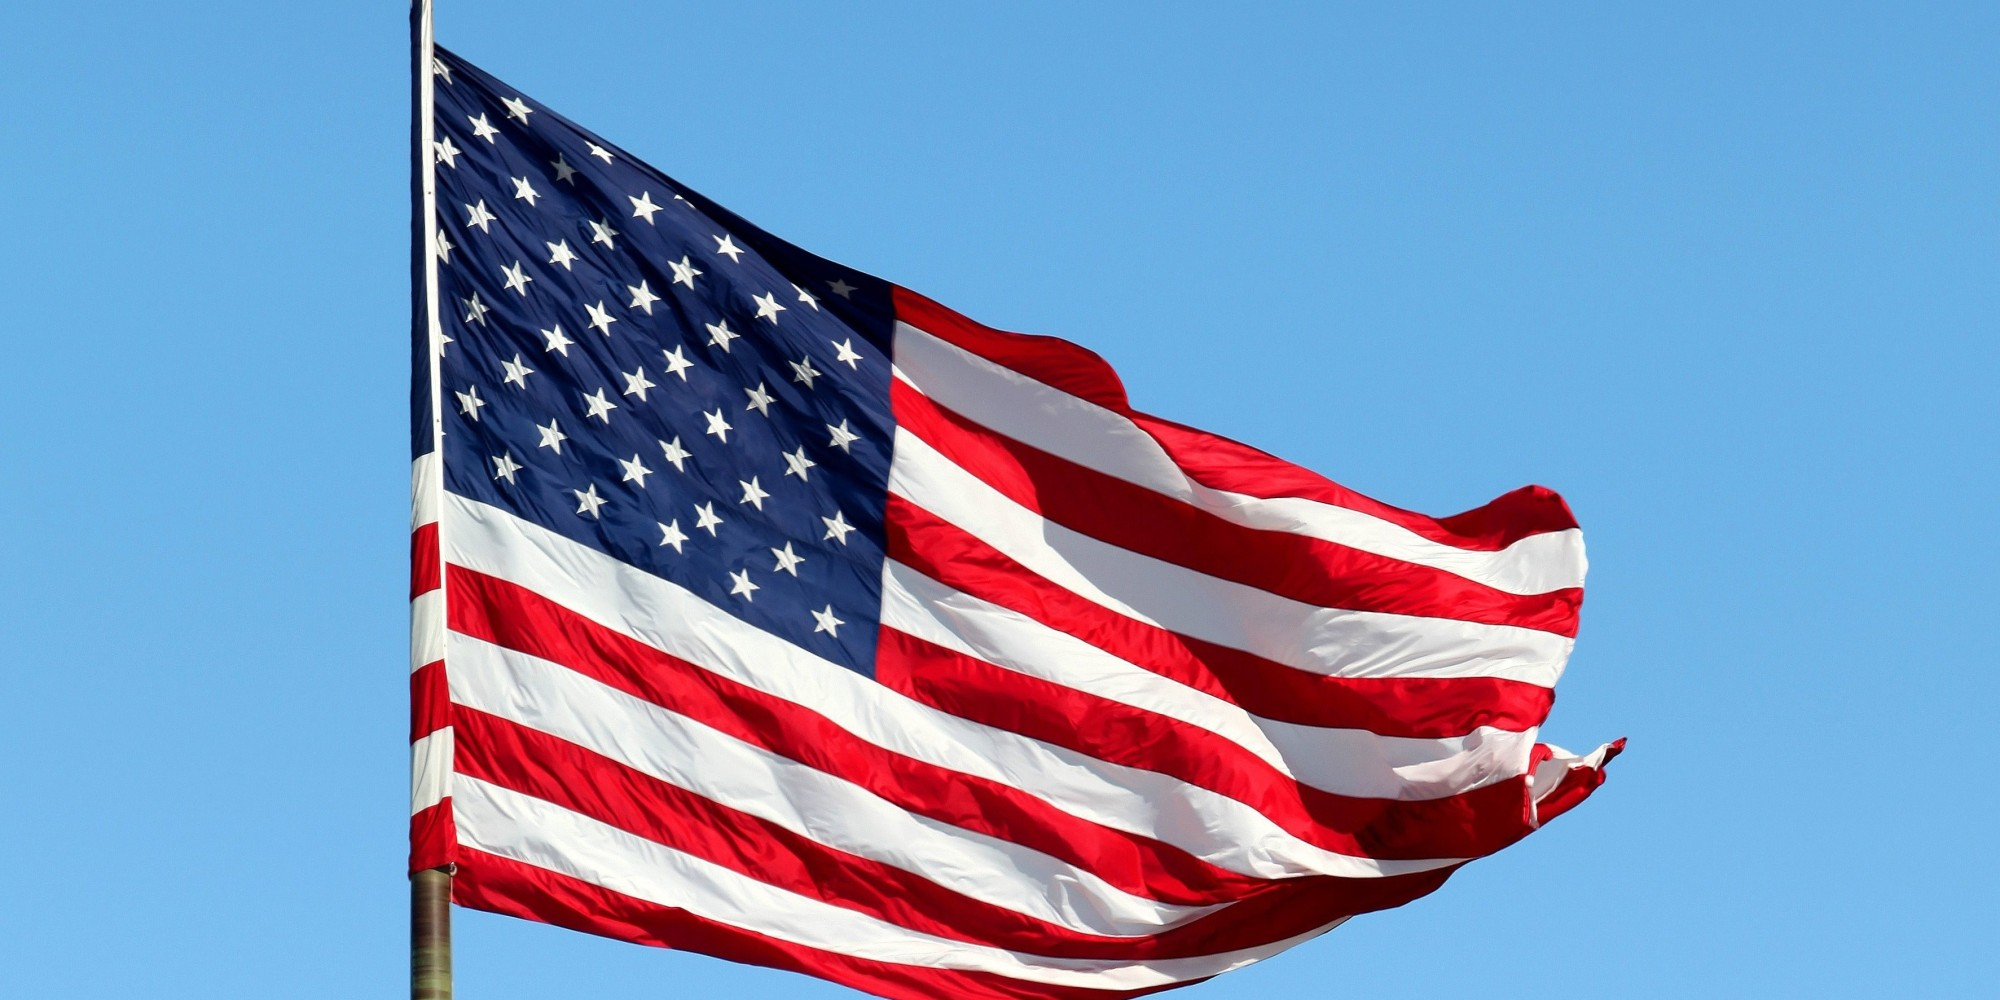 Uc Irvine Student Government Bans National Flags From Campus Areas Huffpost